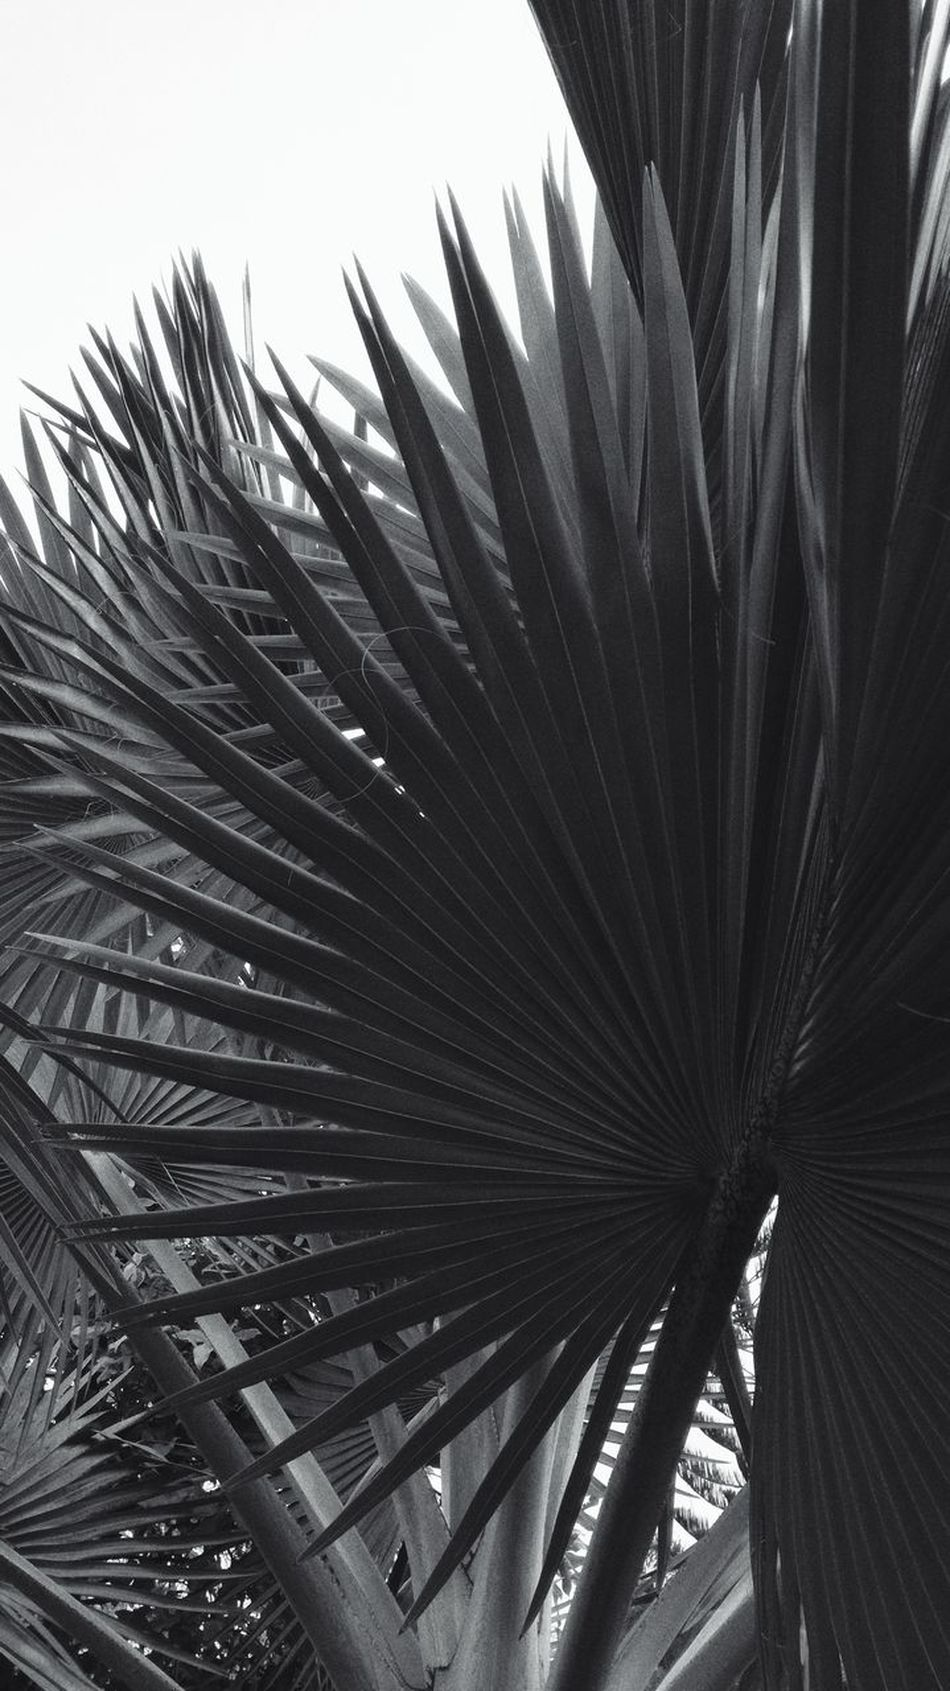 Anahaw Growth Nature Day Sky Tranquility Scenics Growth Beauty In Nature EyeemPhilippines Lines And Patterns Eyeem Philippines Black And White Collection  Black & White Photography EyeEm Travel Photography Nature Tree Geometric Architecture